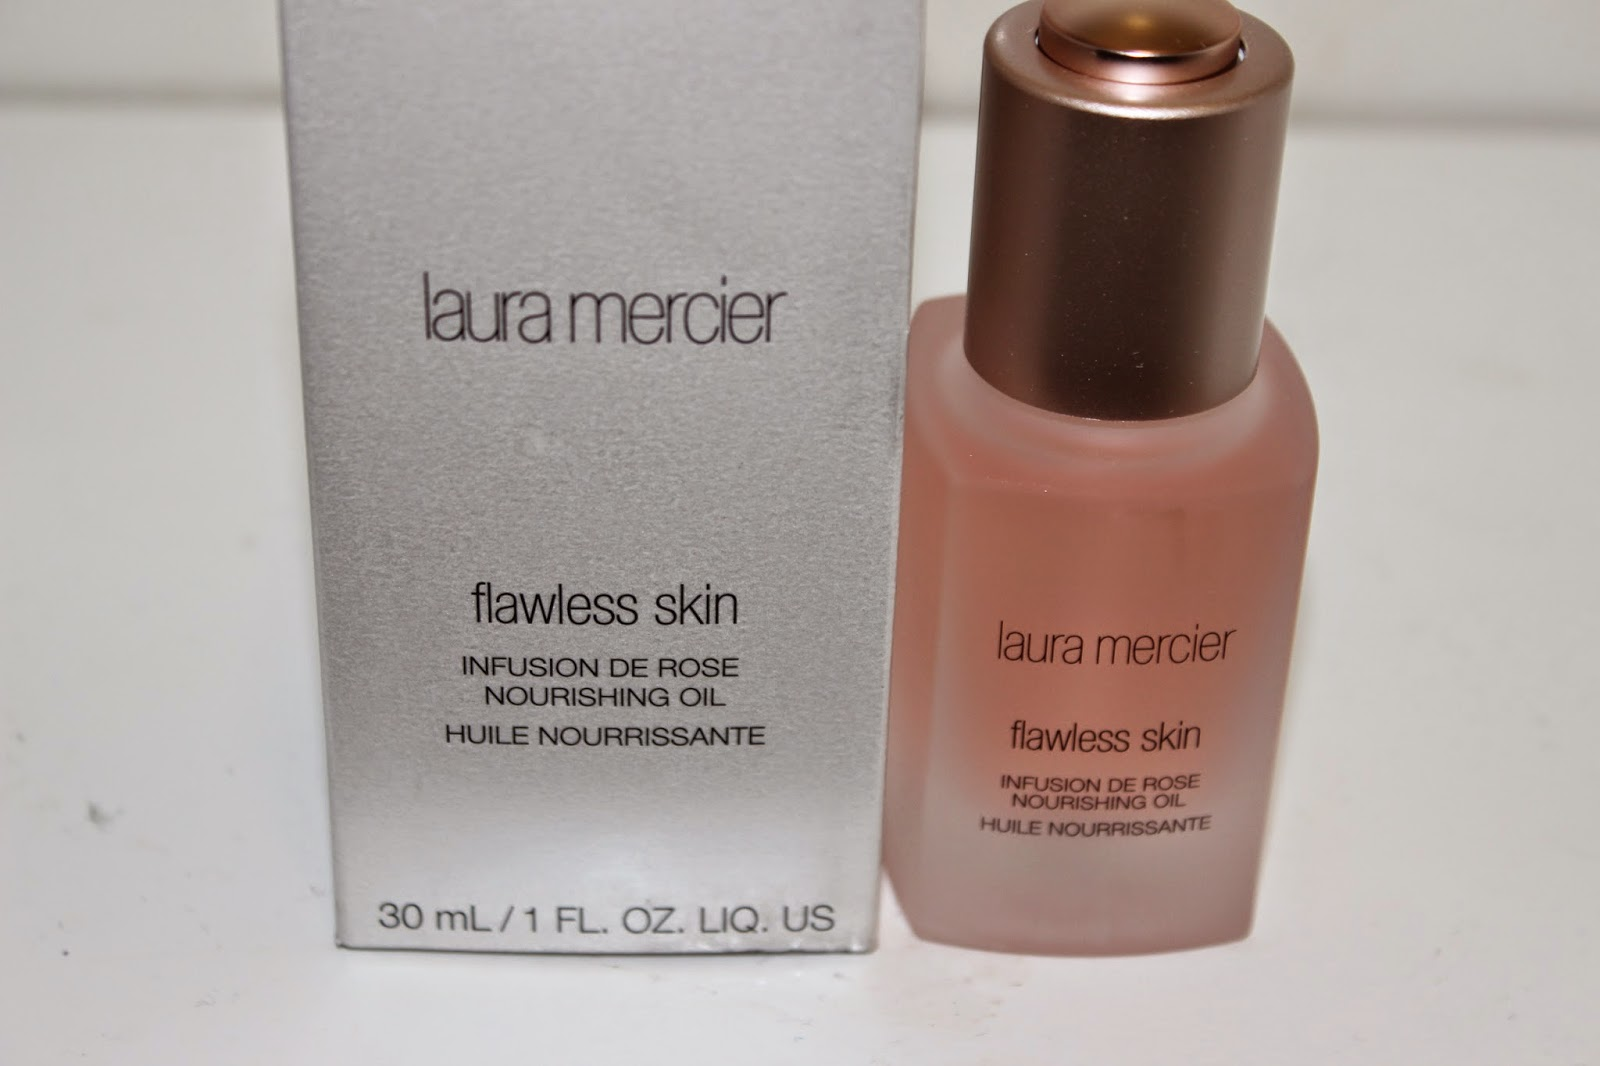 Laura Mercier Flawless Skin infusion de Rose Nourishing oil - Review